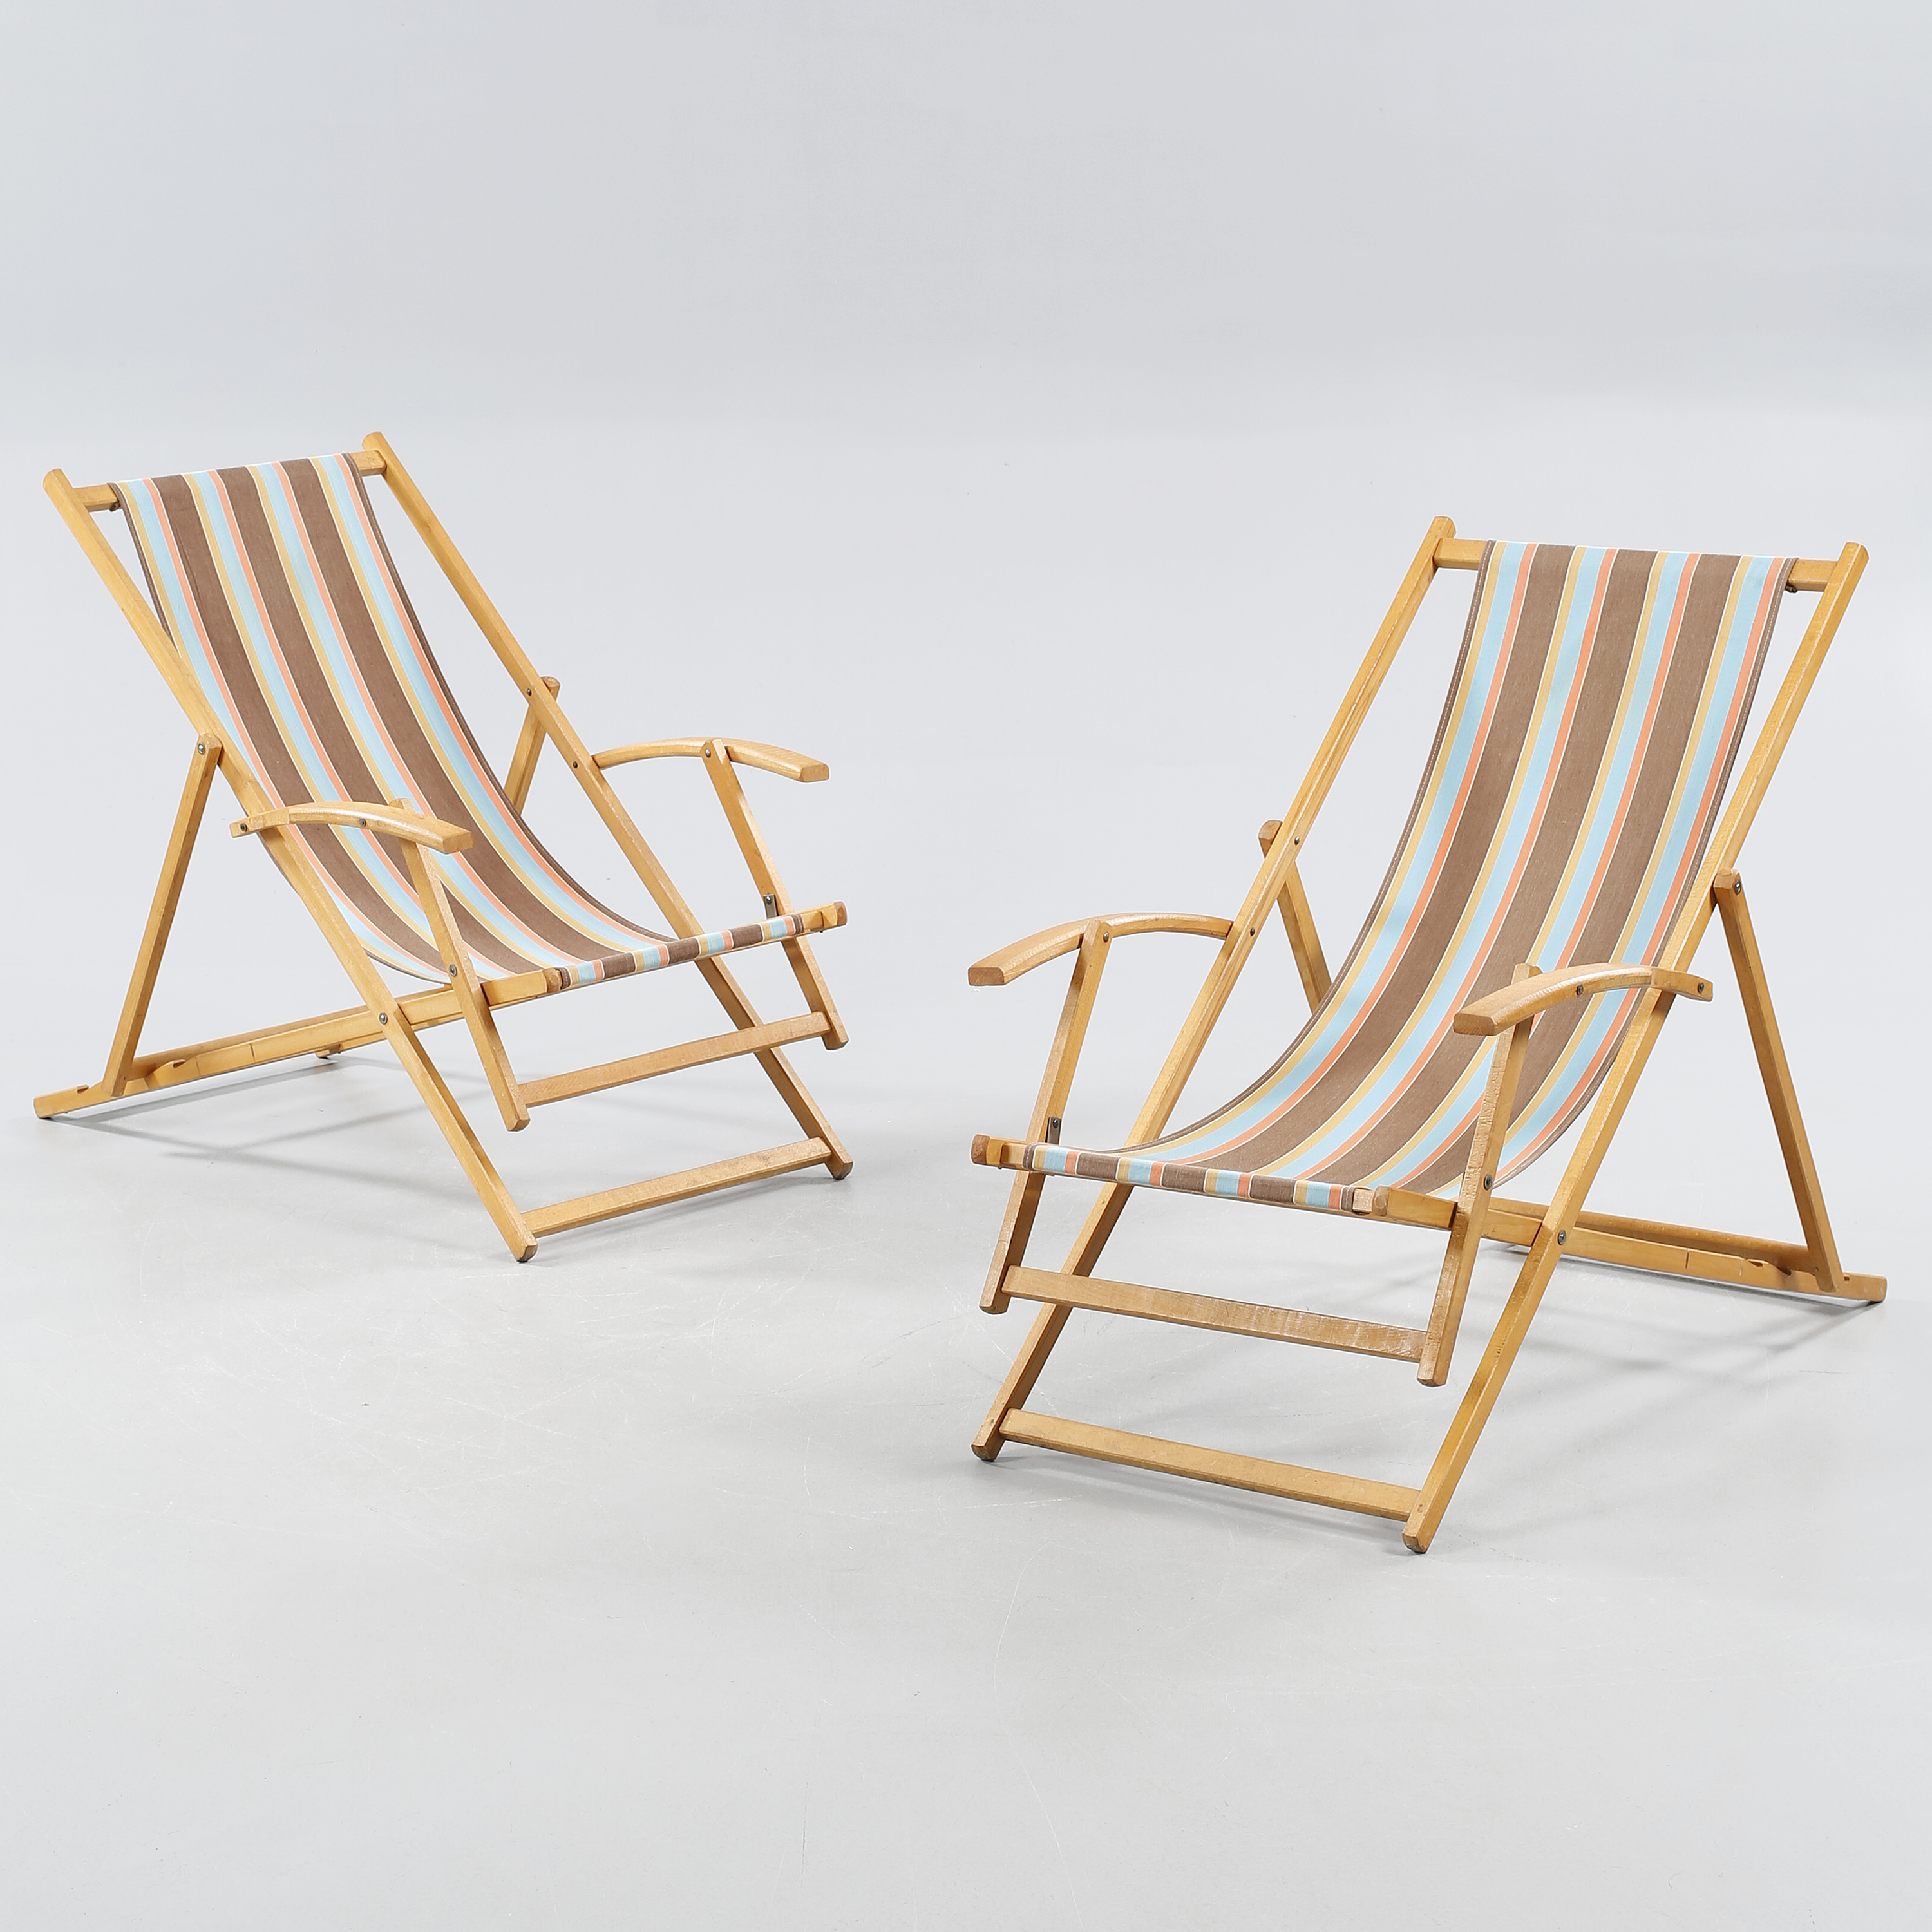 Sunbathing Chairs A Pair Of Sunbathing Chairs Second Half Of The 20th Century